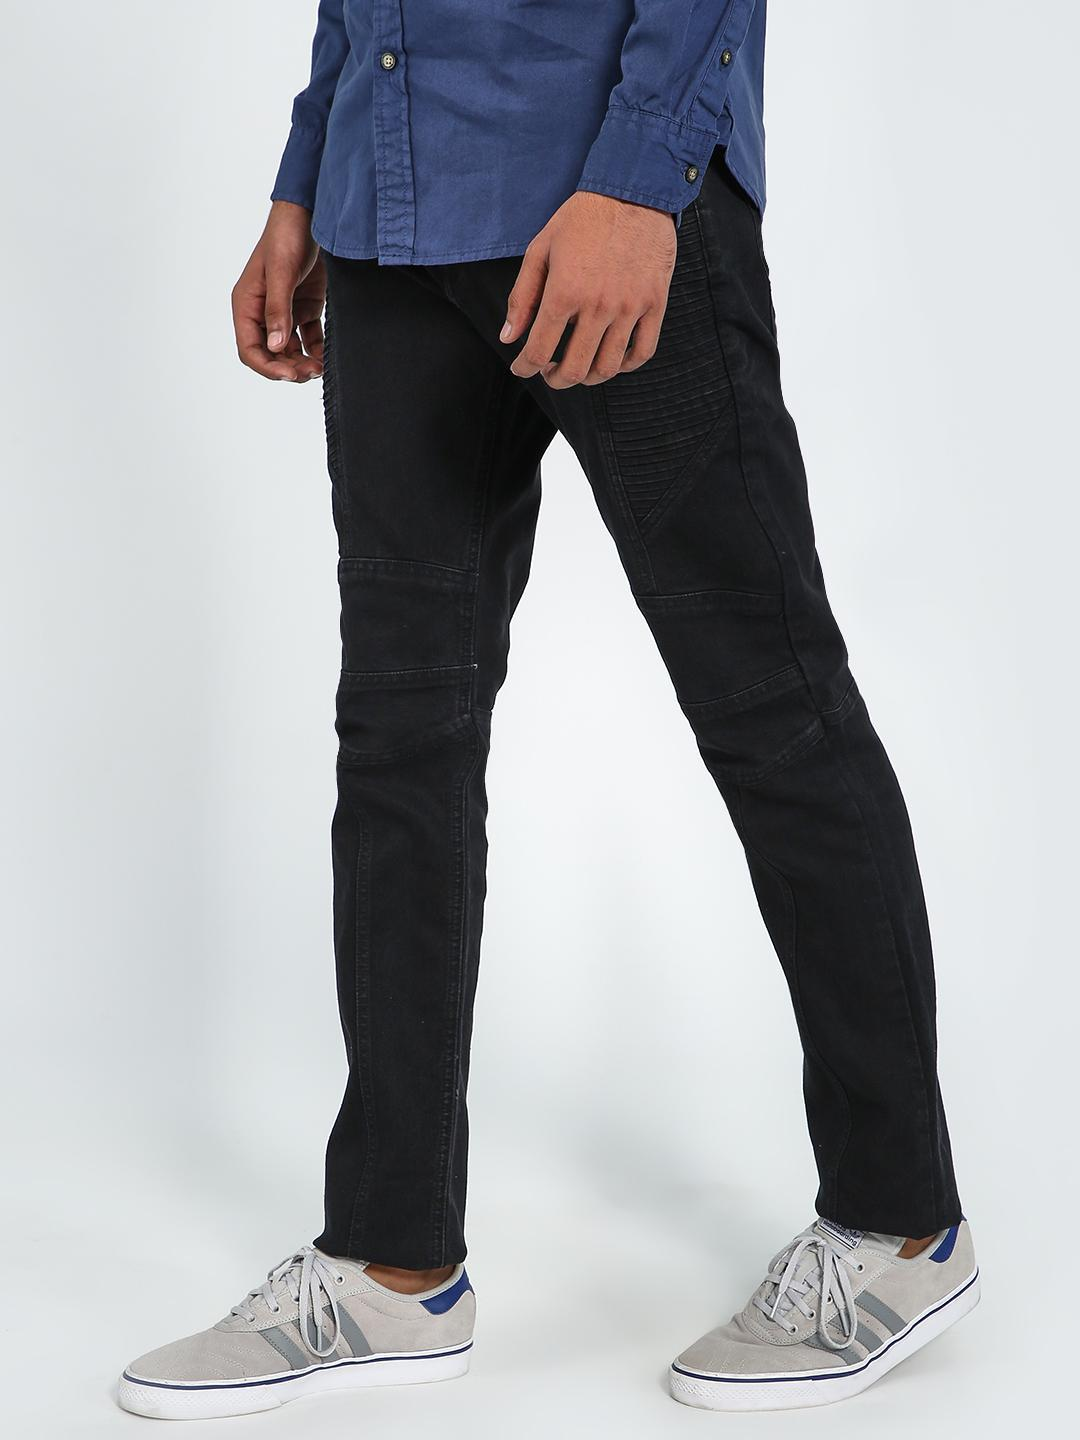 Blue Saint Black Cut & Sew Panelled Biker Jeans 1